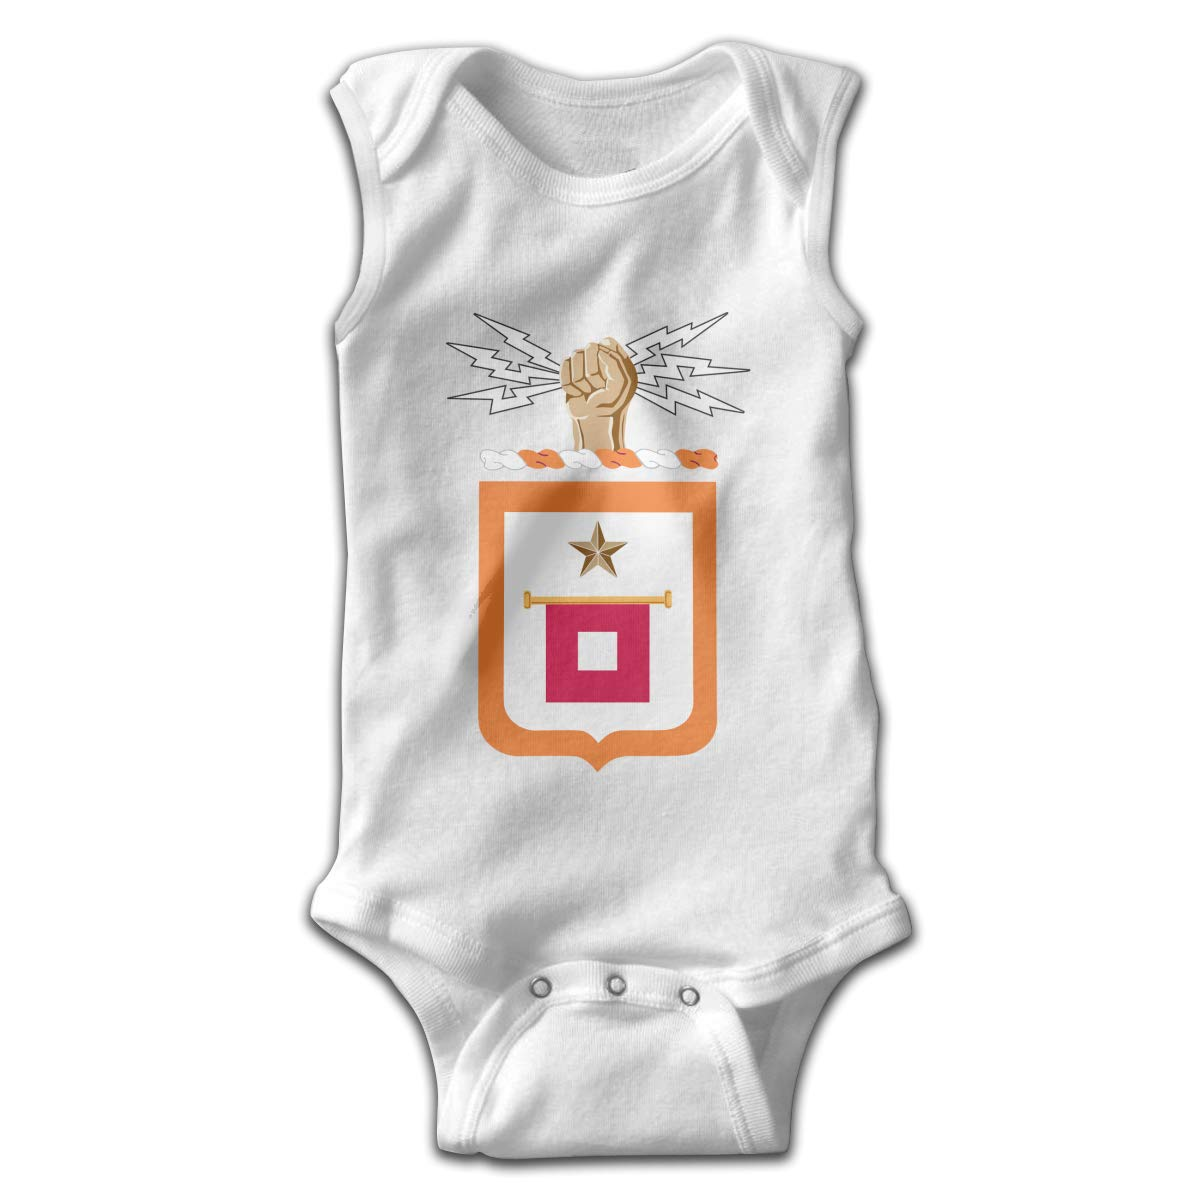 US Army Signal Corps Baby Clothes Sleeveless Cute Novelty Newborn Summer Bodysuit Gift for Baby